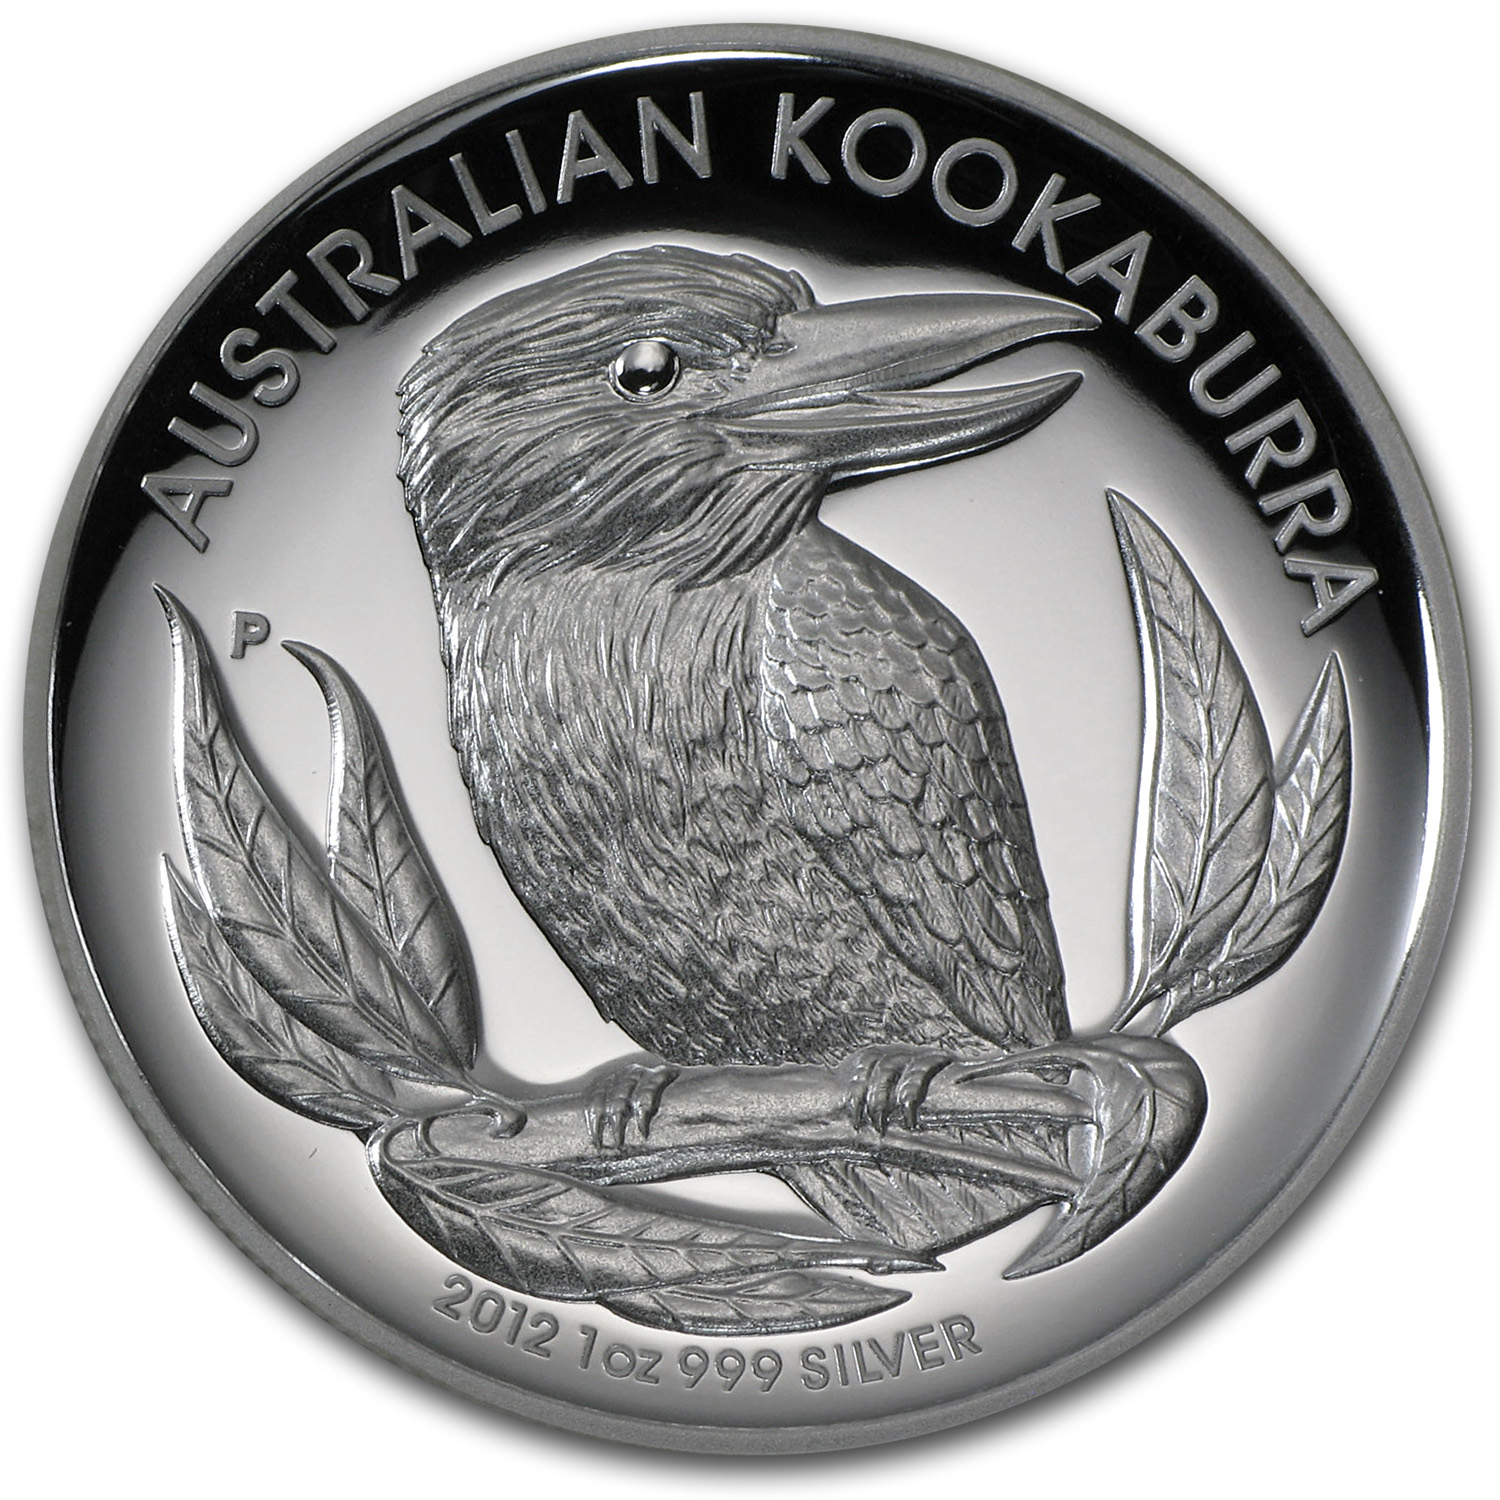 2012 1 oz Silver Australian Kookaburra Proof (High Relief)